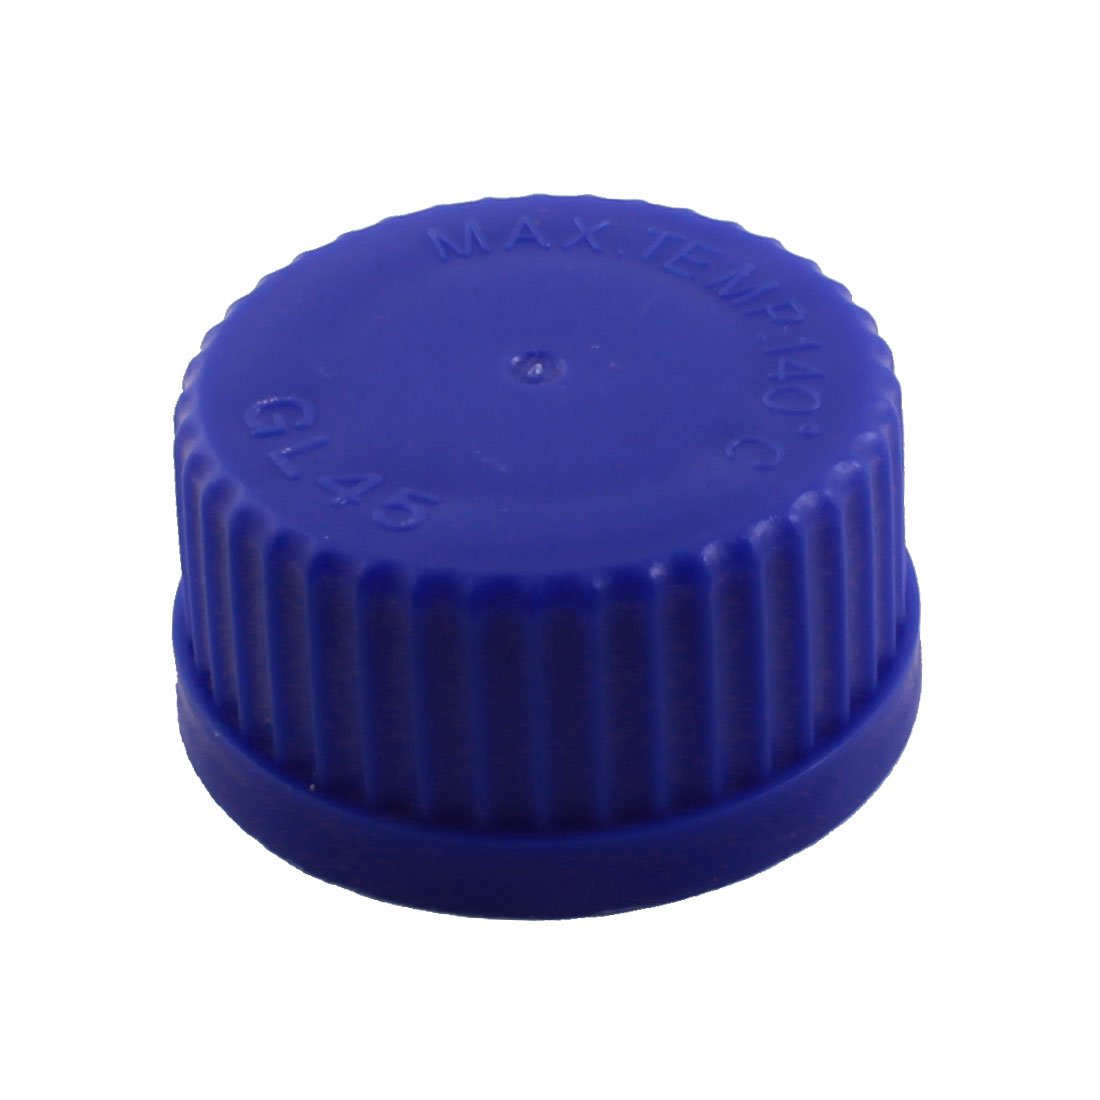 uxcell 45mm Thread Dia Laboratory Blue Screw Lid Reagent Bottle Container Cap